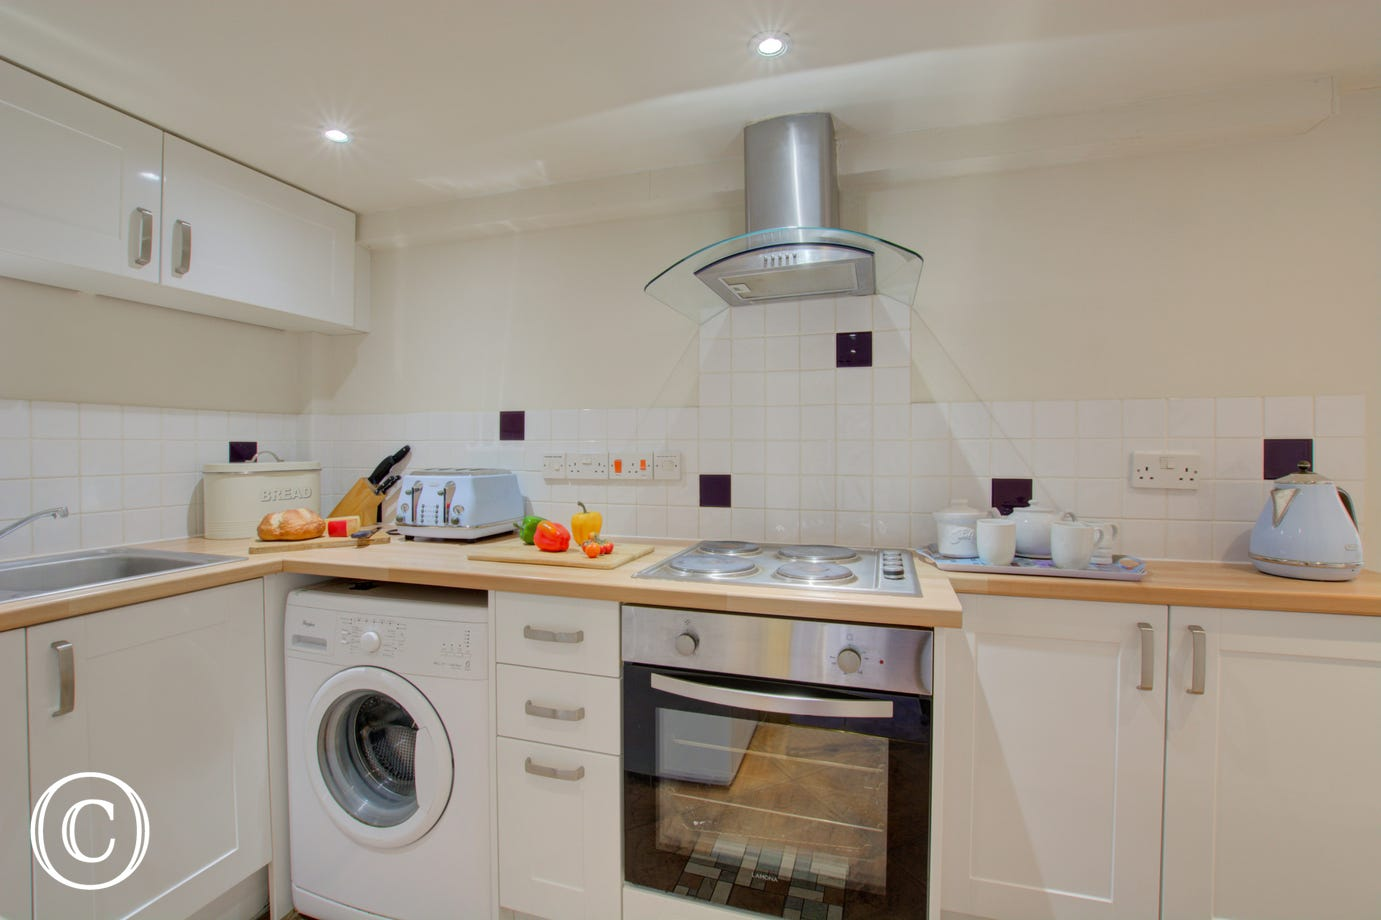 Modern fitted kitchen with  built-in electric oven, electric hob, fridge with icebox, microwave and washing machine